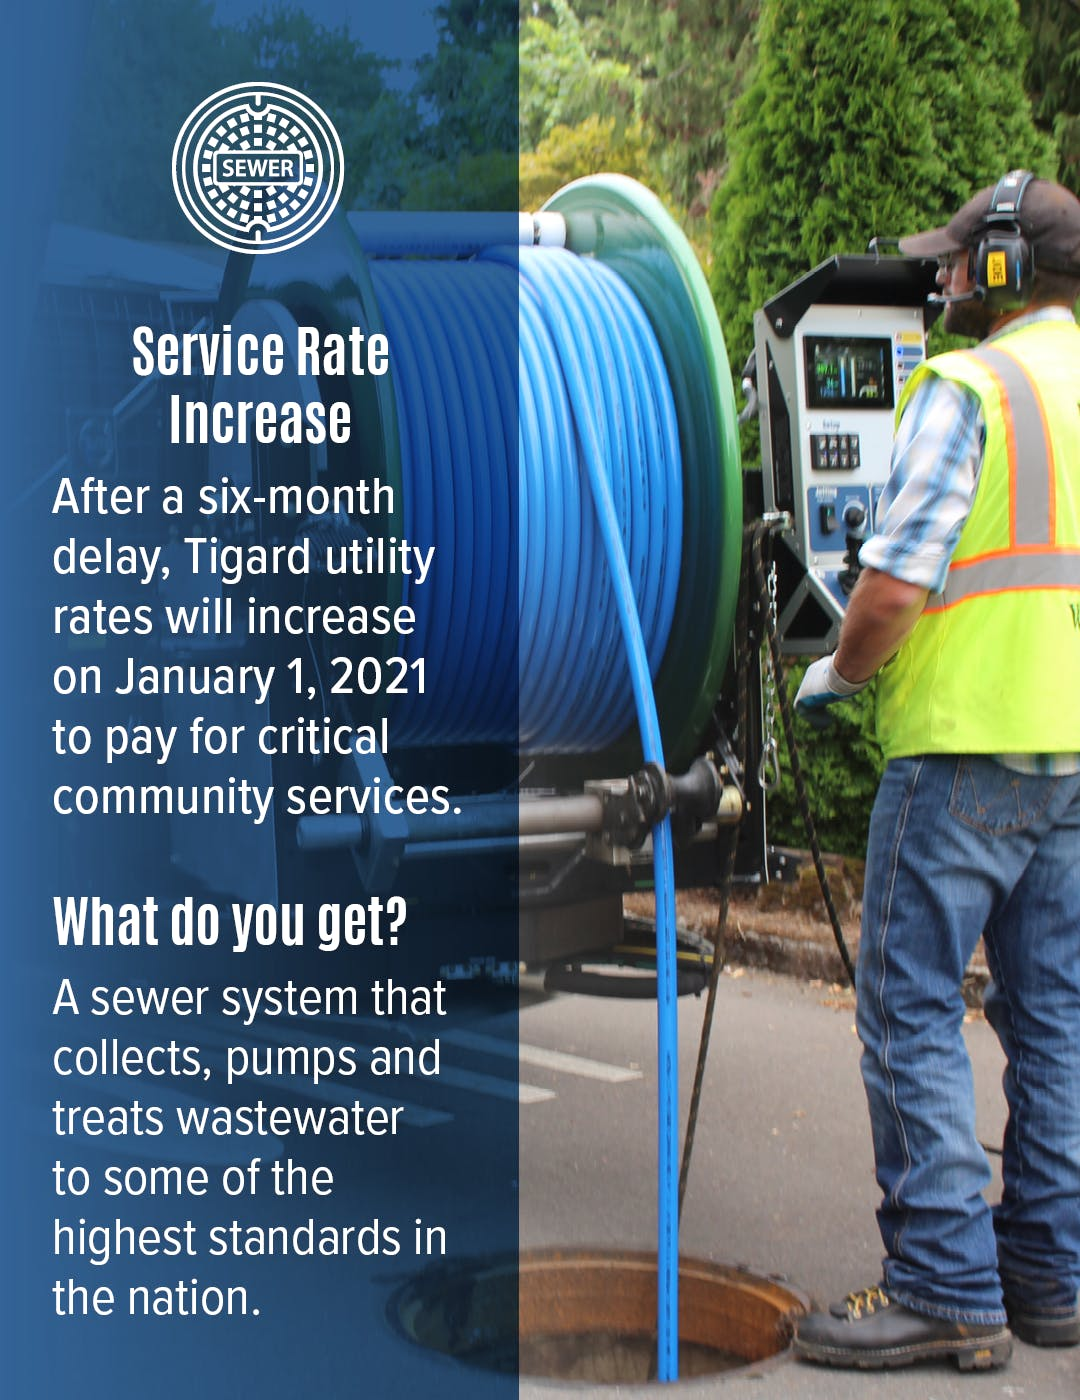 Sewer_Services_Rate_Increases_1080x1400.png